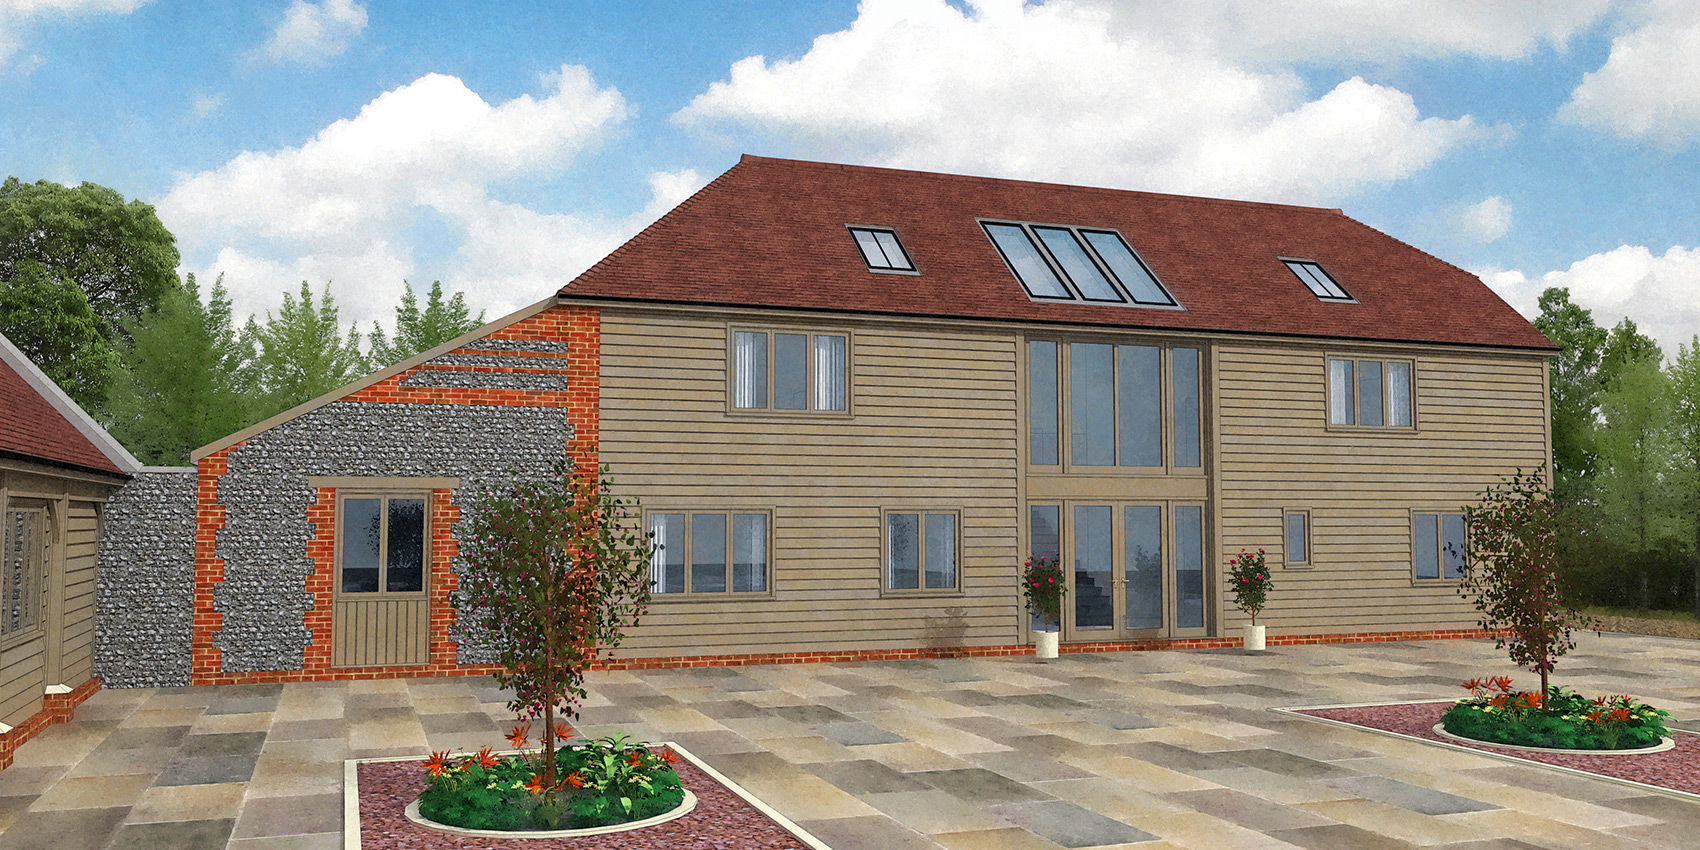 Residential Change Of Use Pre-Application - Ashdown Forest 01